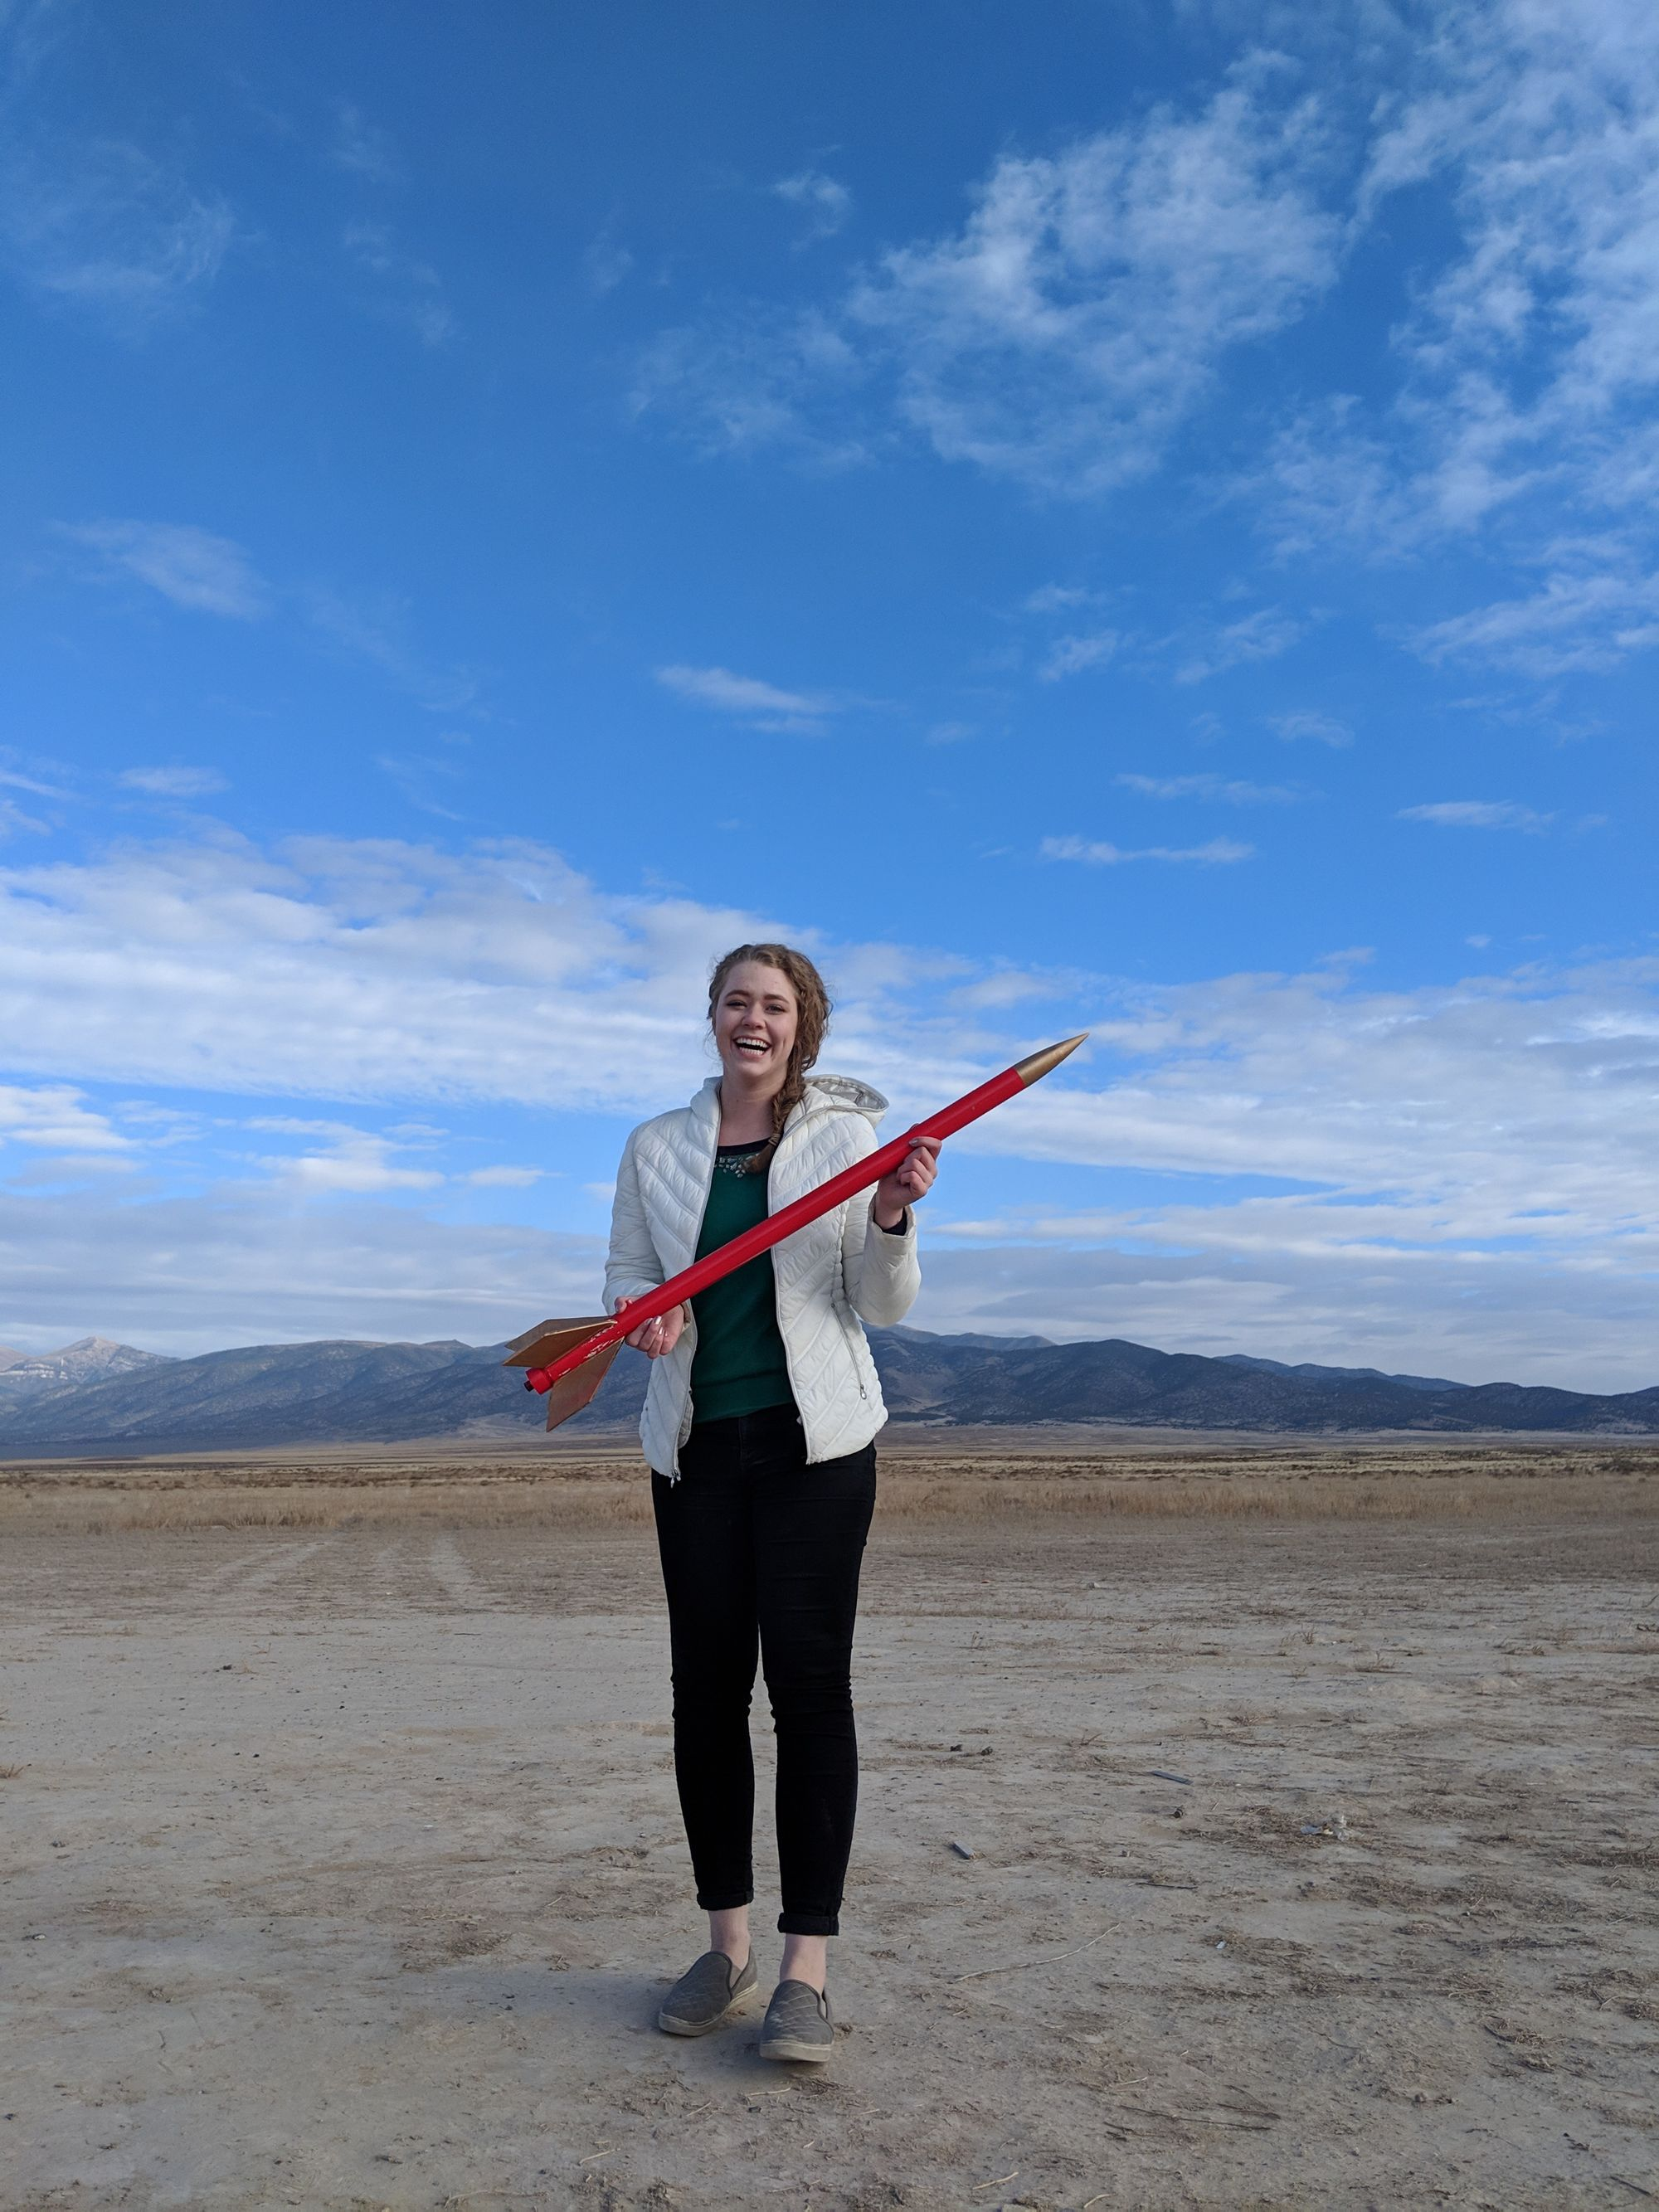 BYU Rocketry Student Launch Competition